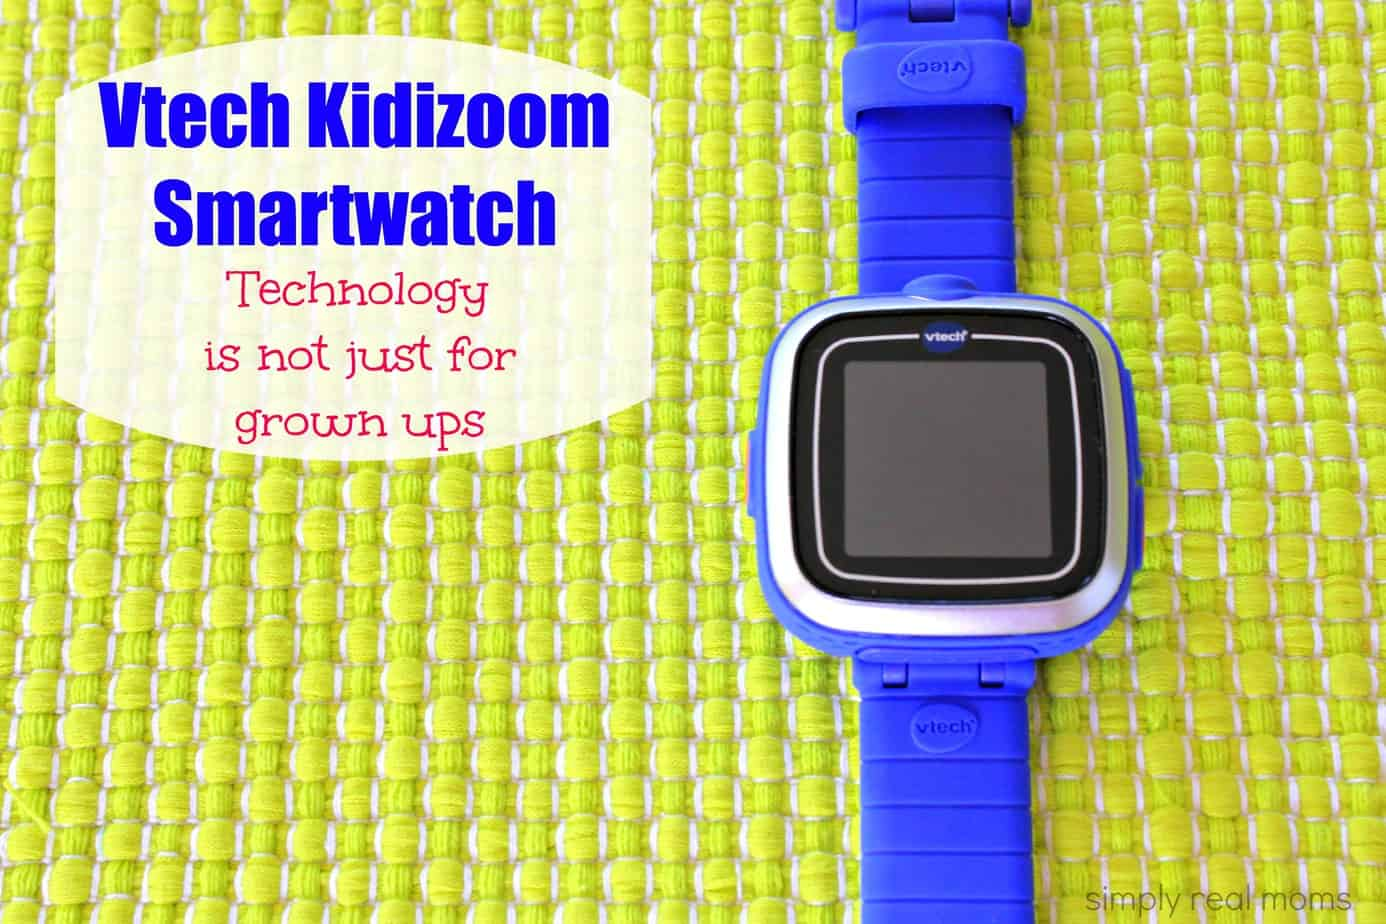 Vtech Kidizoom Smartwatch: Technology is Not Just For Grown Ups  3